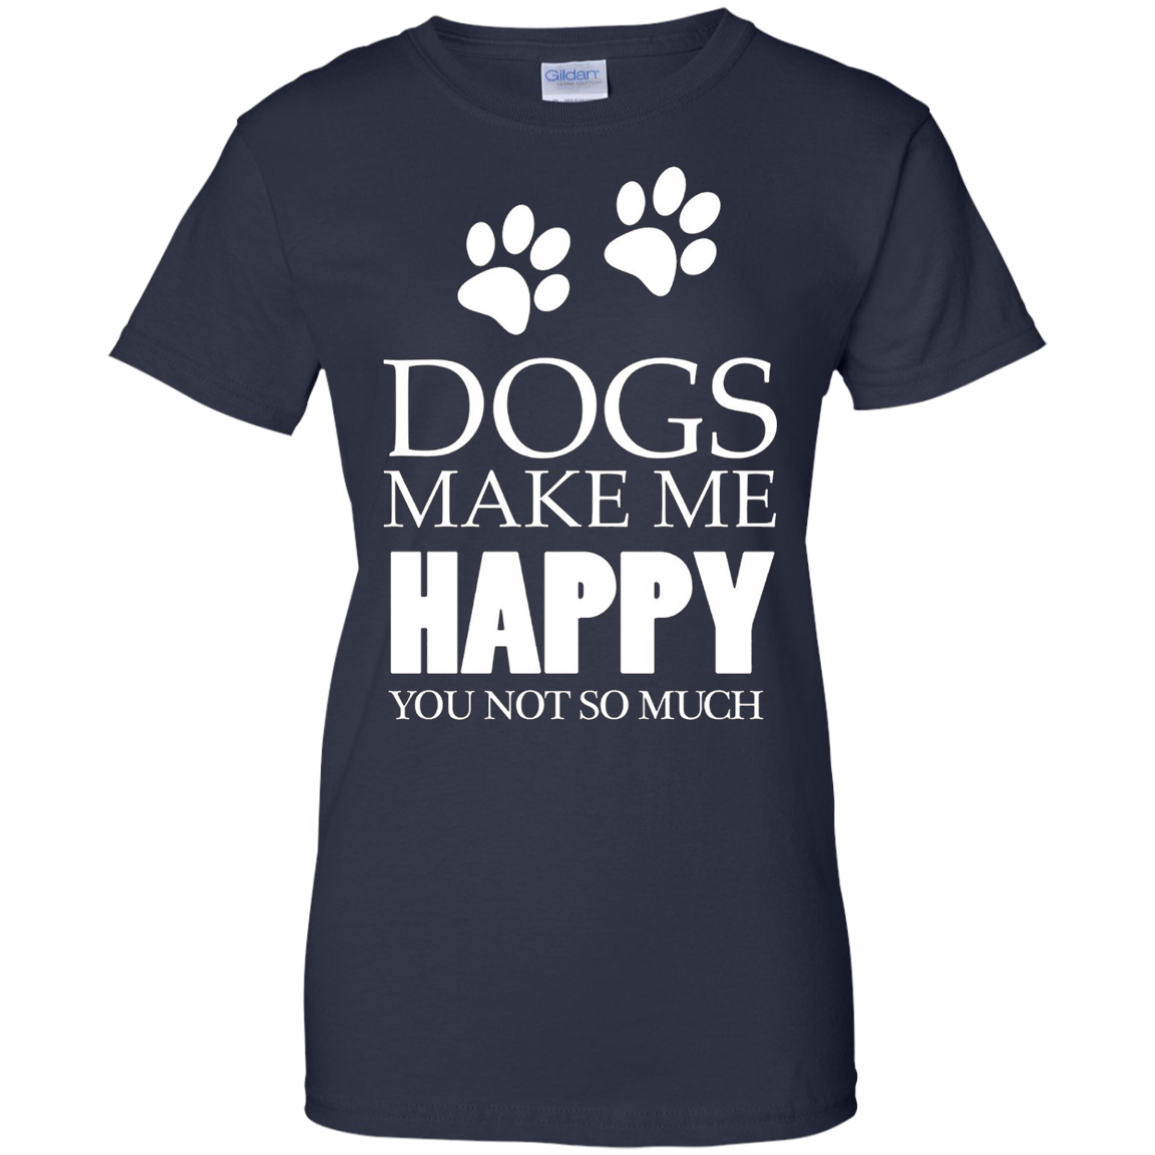 Dogs Make Me Happy You Not So Much T-Shirt - I Love Dogs T-Shirt